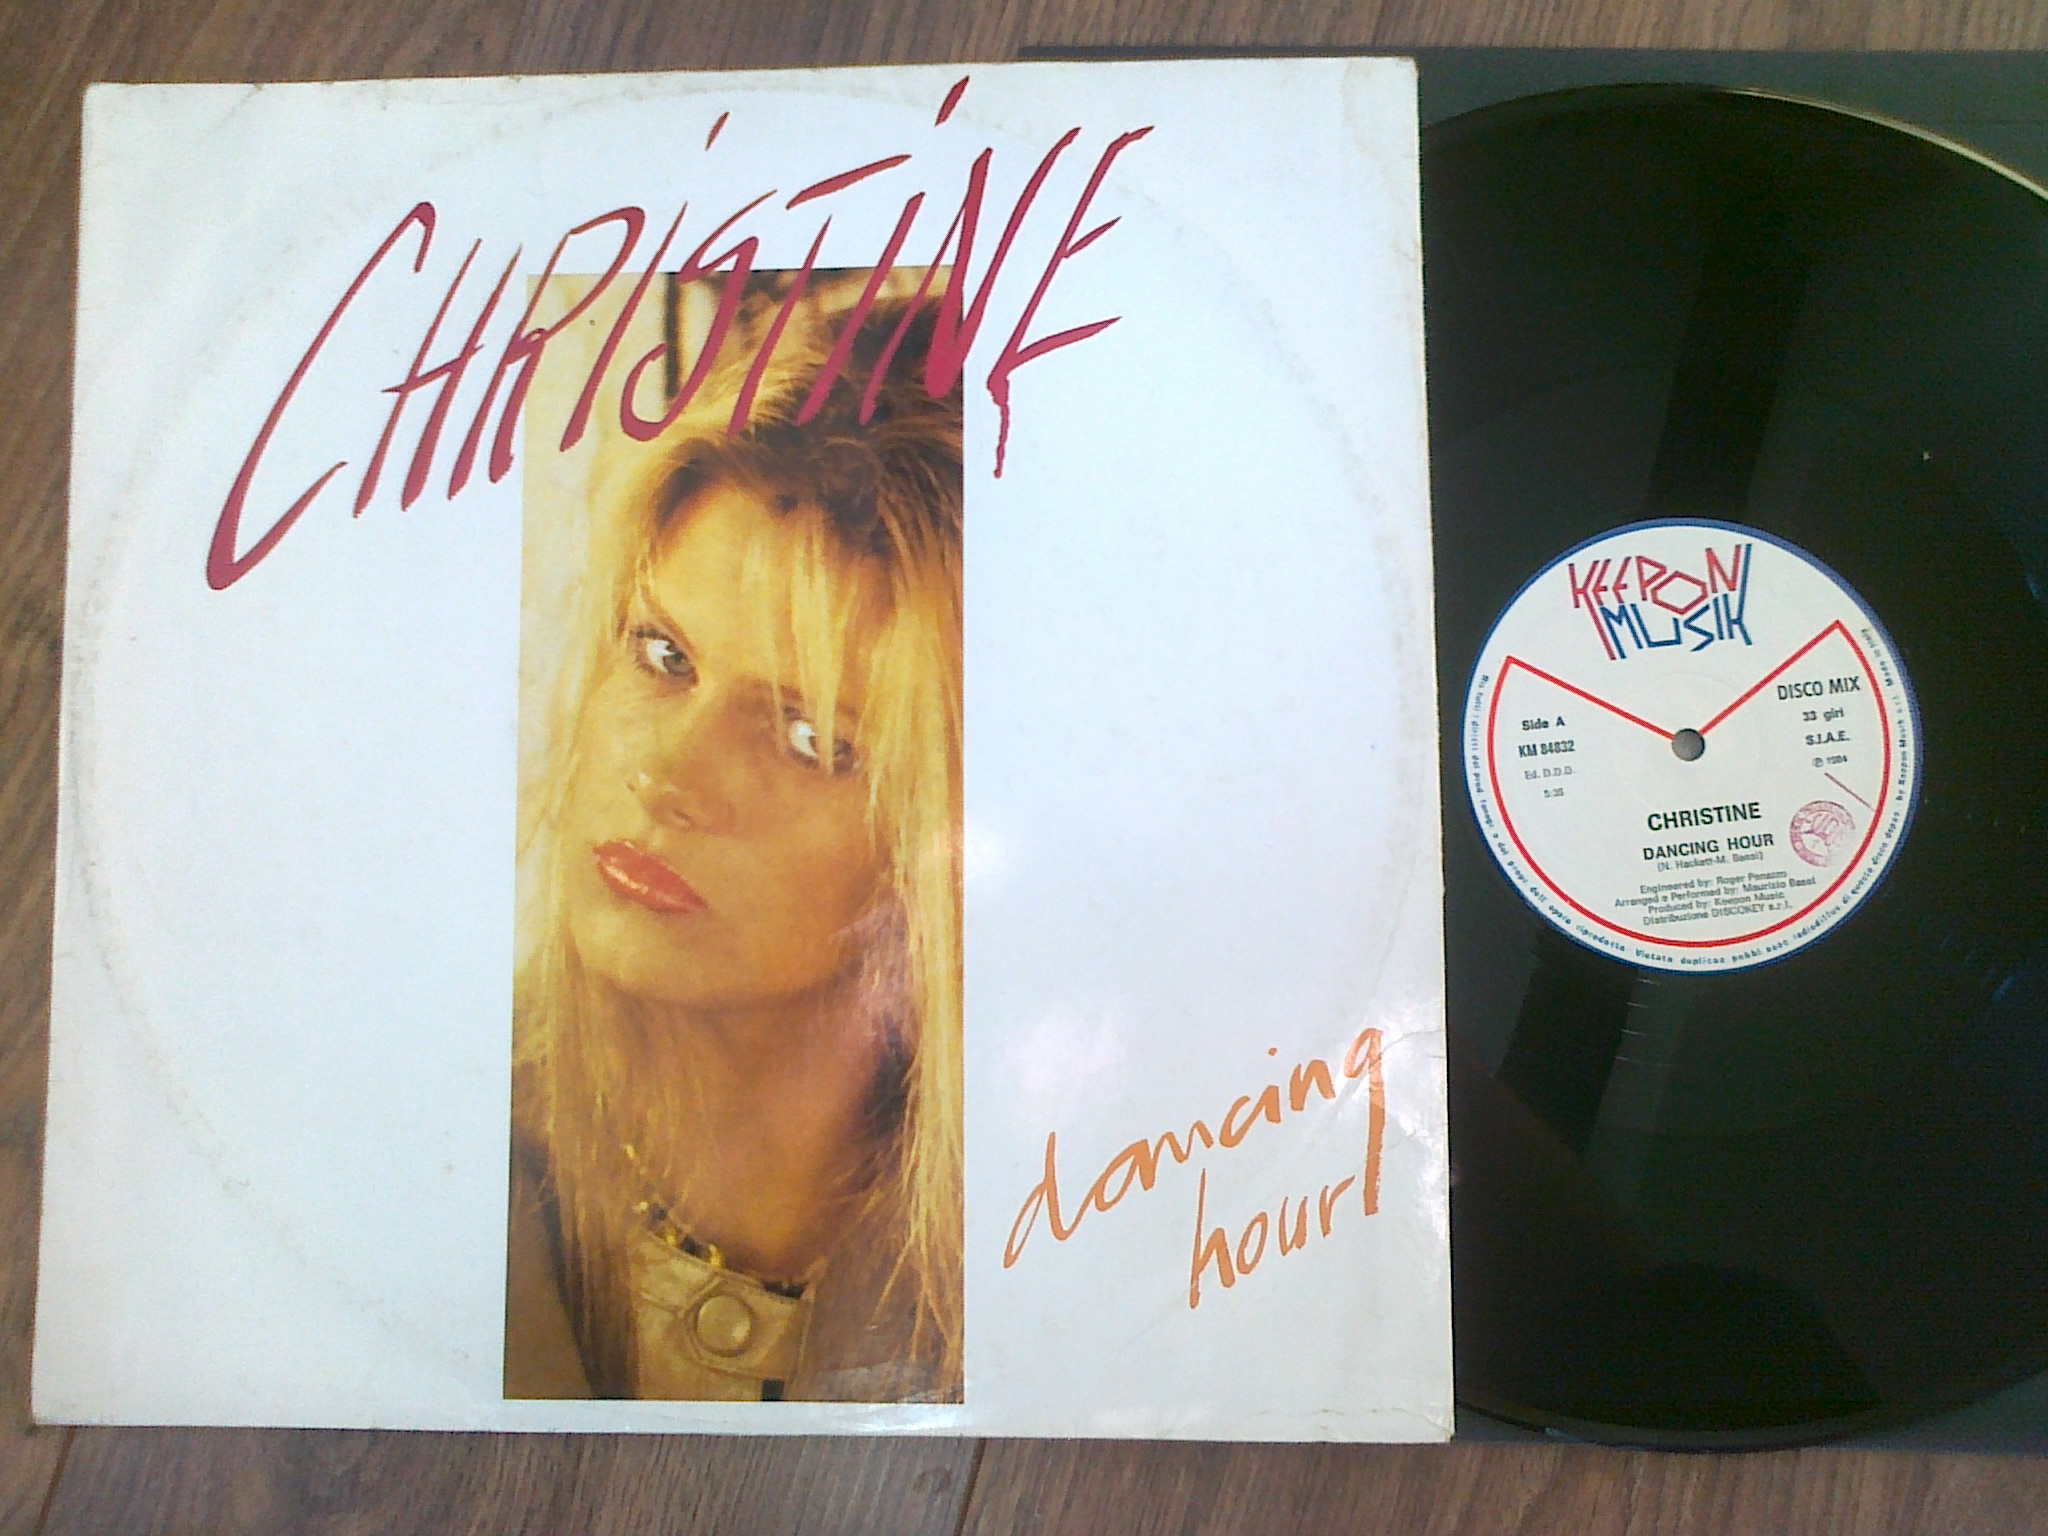 Christine - Dancing Hour